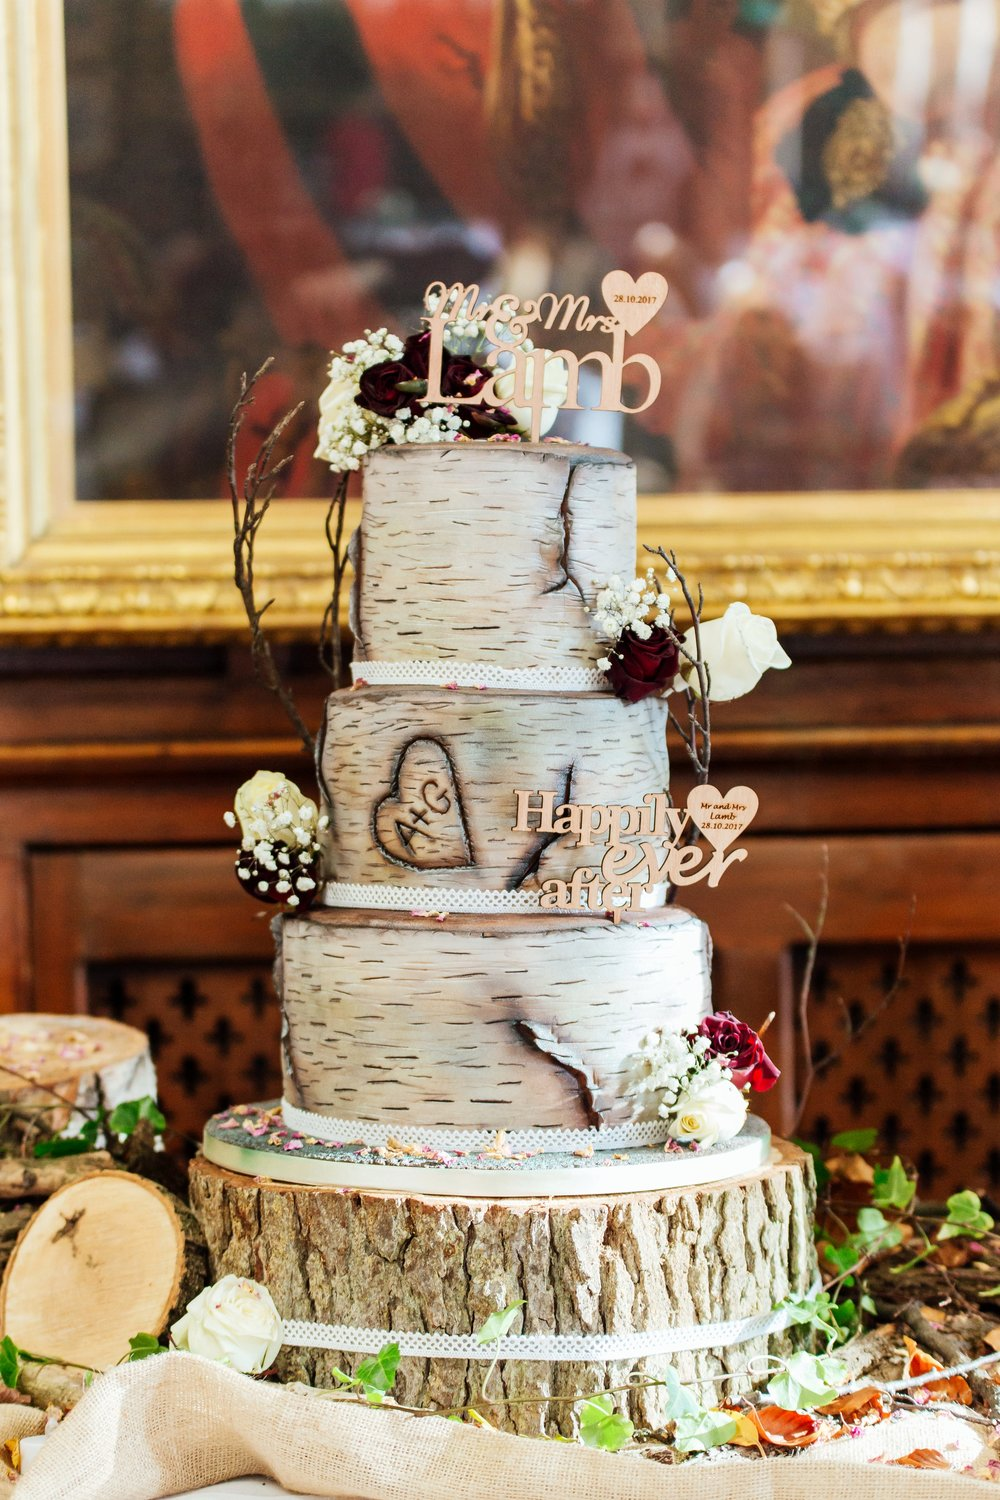 amazing-unique-rustic-wedding-cake / Amy-james-photography /hampshire-wedding-photographer-hampshire